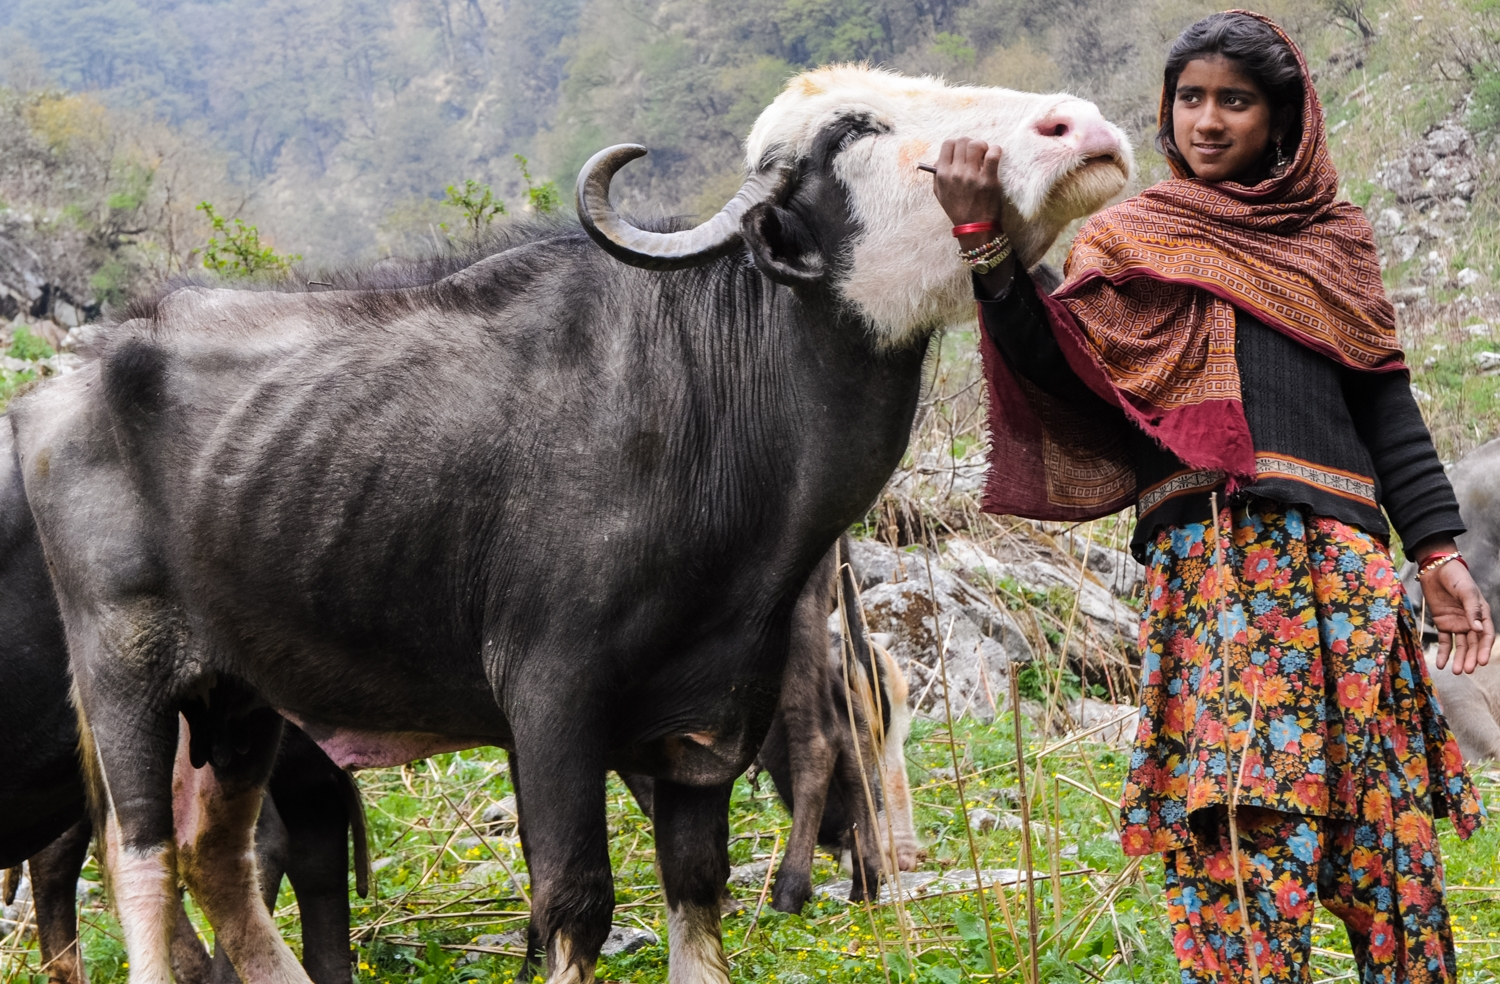 But Van Gujjars do not just see their buffaloes as economic resources. They have deep emotional bonds with them: they think of them as family members;they name them and mourn for them when they die and would never dream of using them or selling them for meat. In fact, while Muslim, Van Gujjars are also traditionally vegetarian.